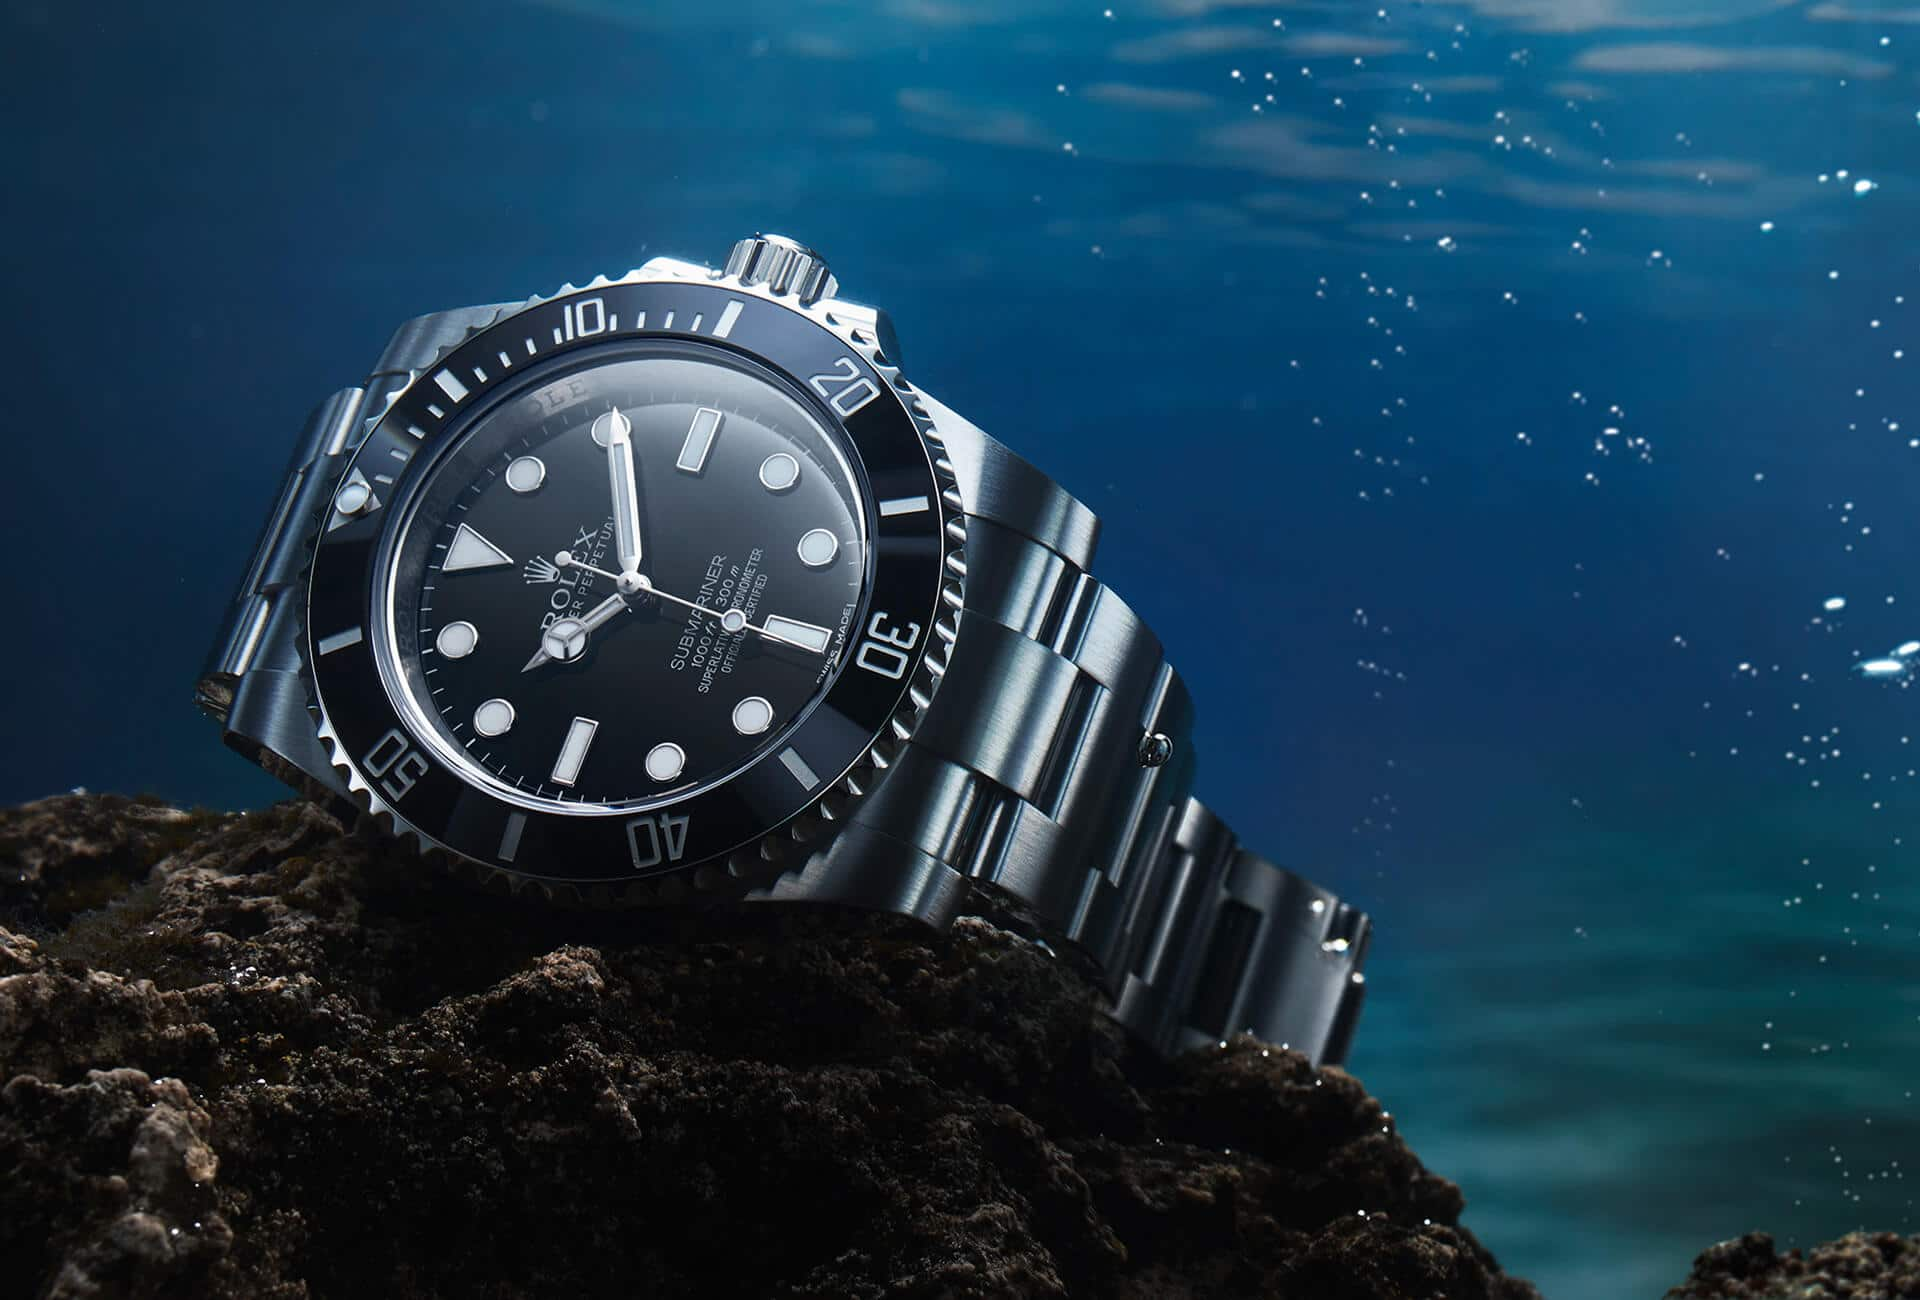 Rolex Submariner video